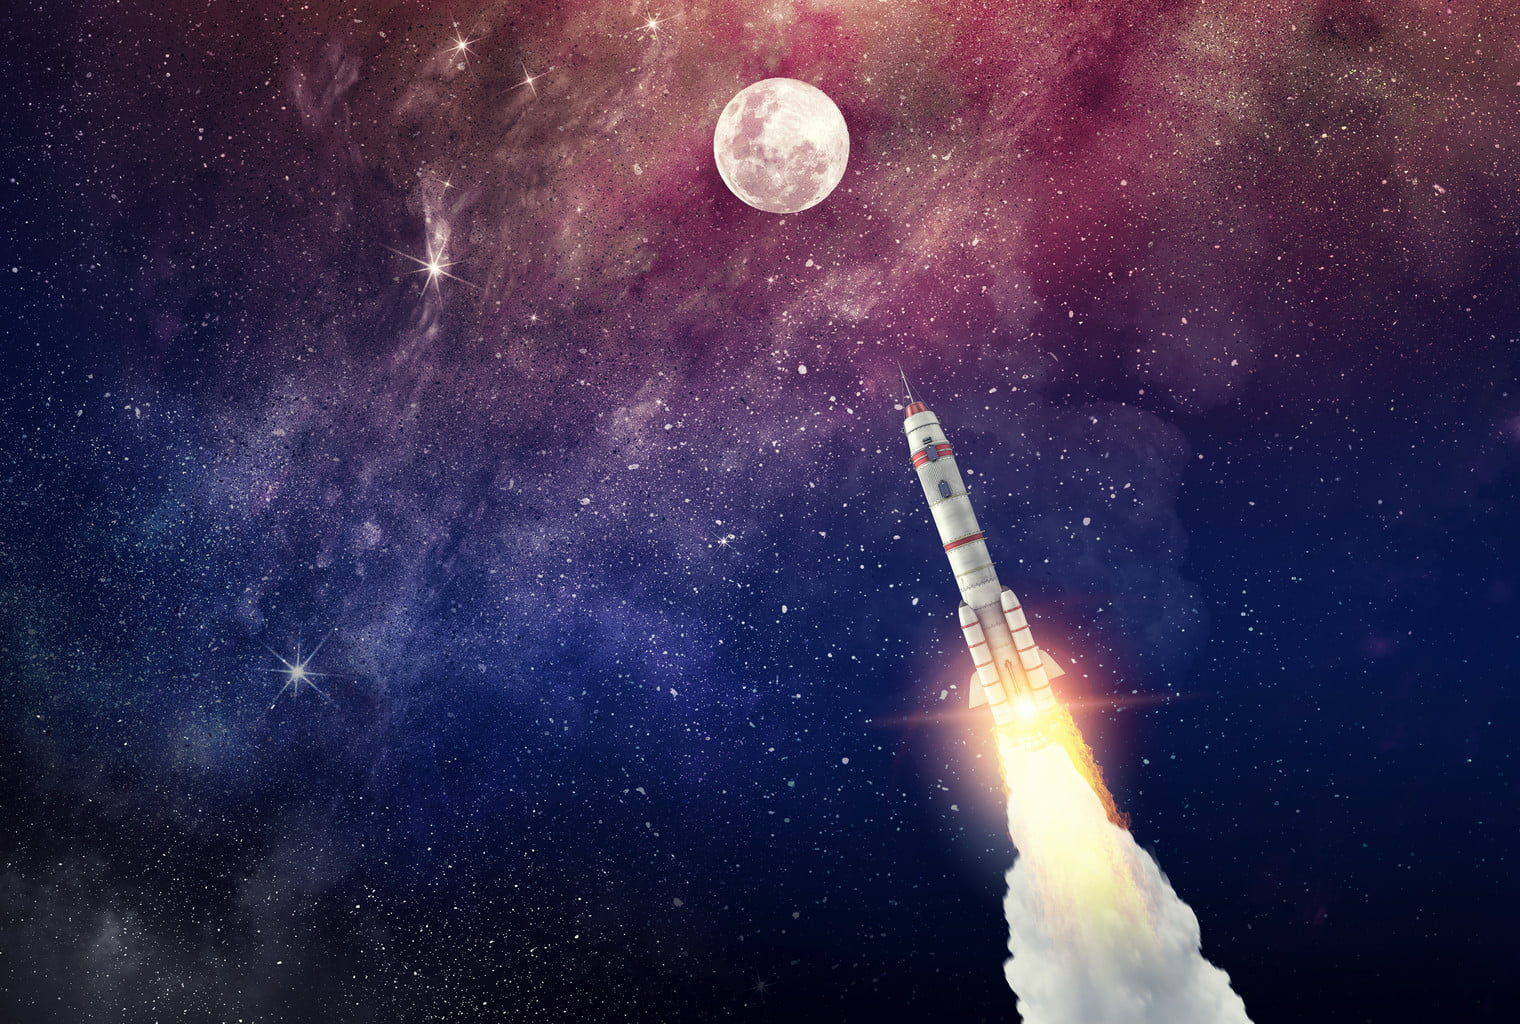 moon - Bitcoin Is On Its Way To $100K - Price Triggers